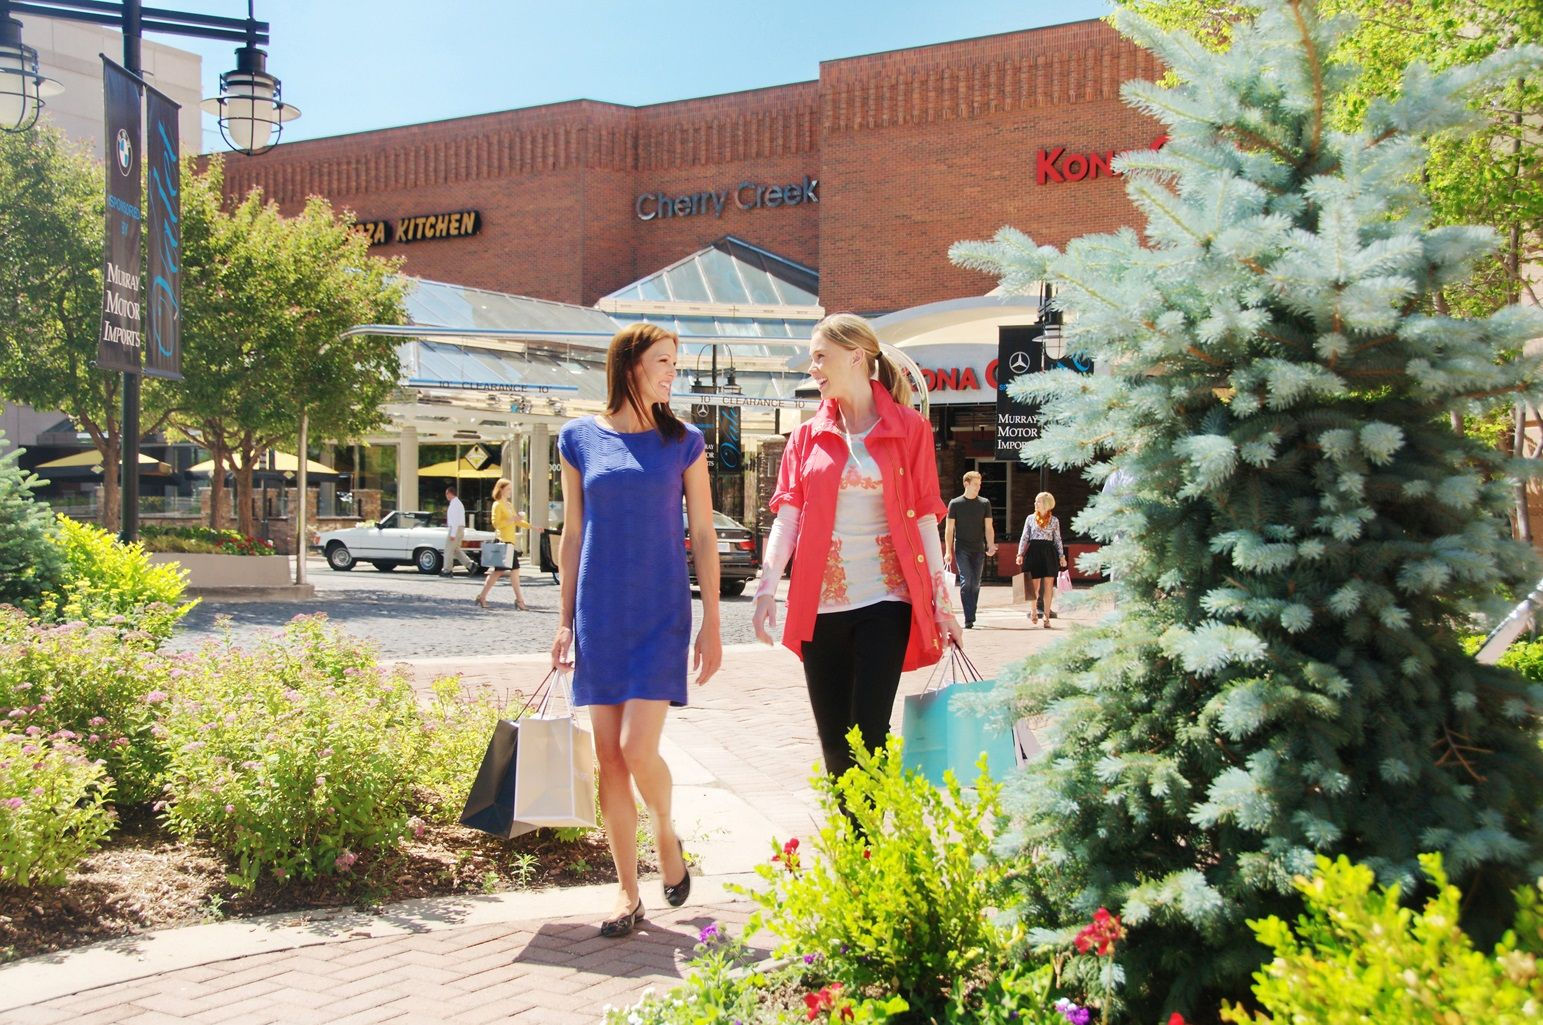 Things to do in Denver - Cherry Creek Shopping Center